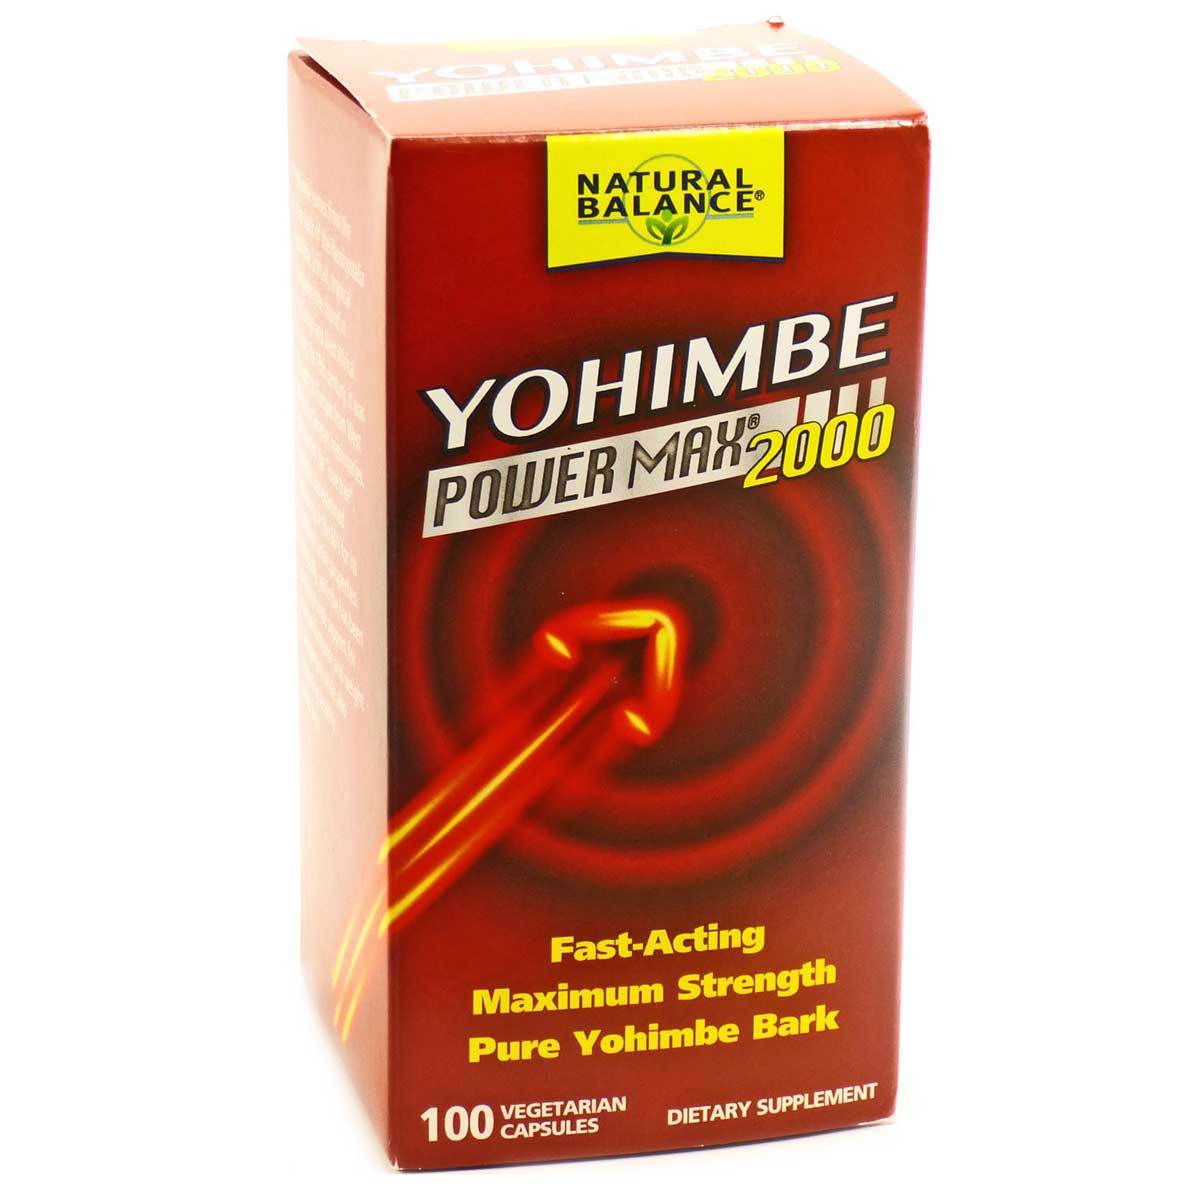 Natural Balance Yohimbe Power Max 2000mg 100 Vege Caps Herbs Natural Balance  (1057911799851)